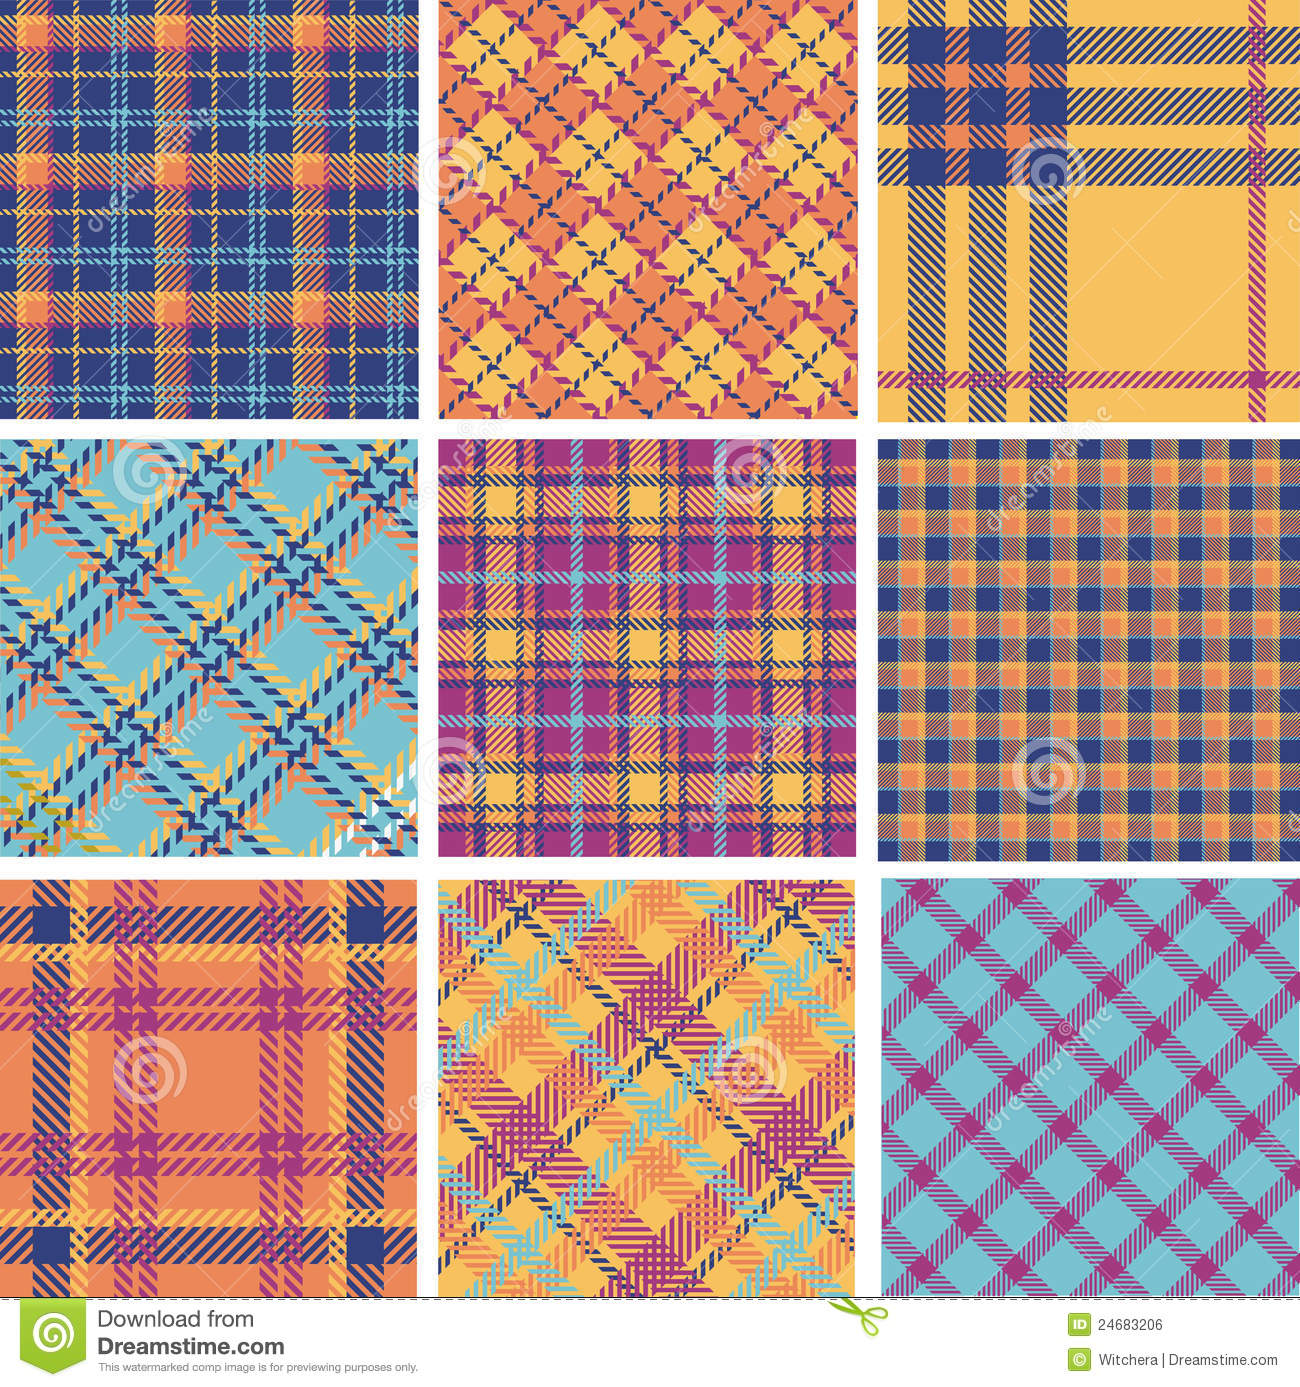 How To Draw Tartan Patters